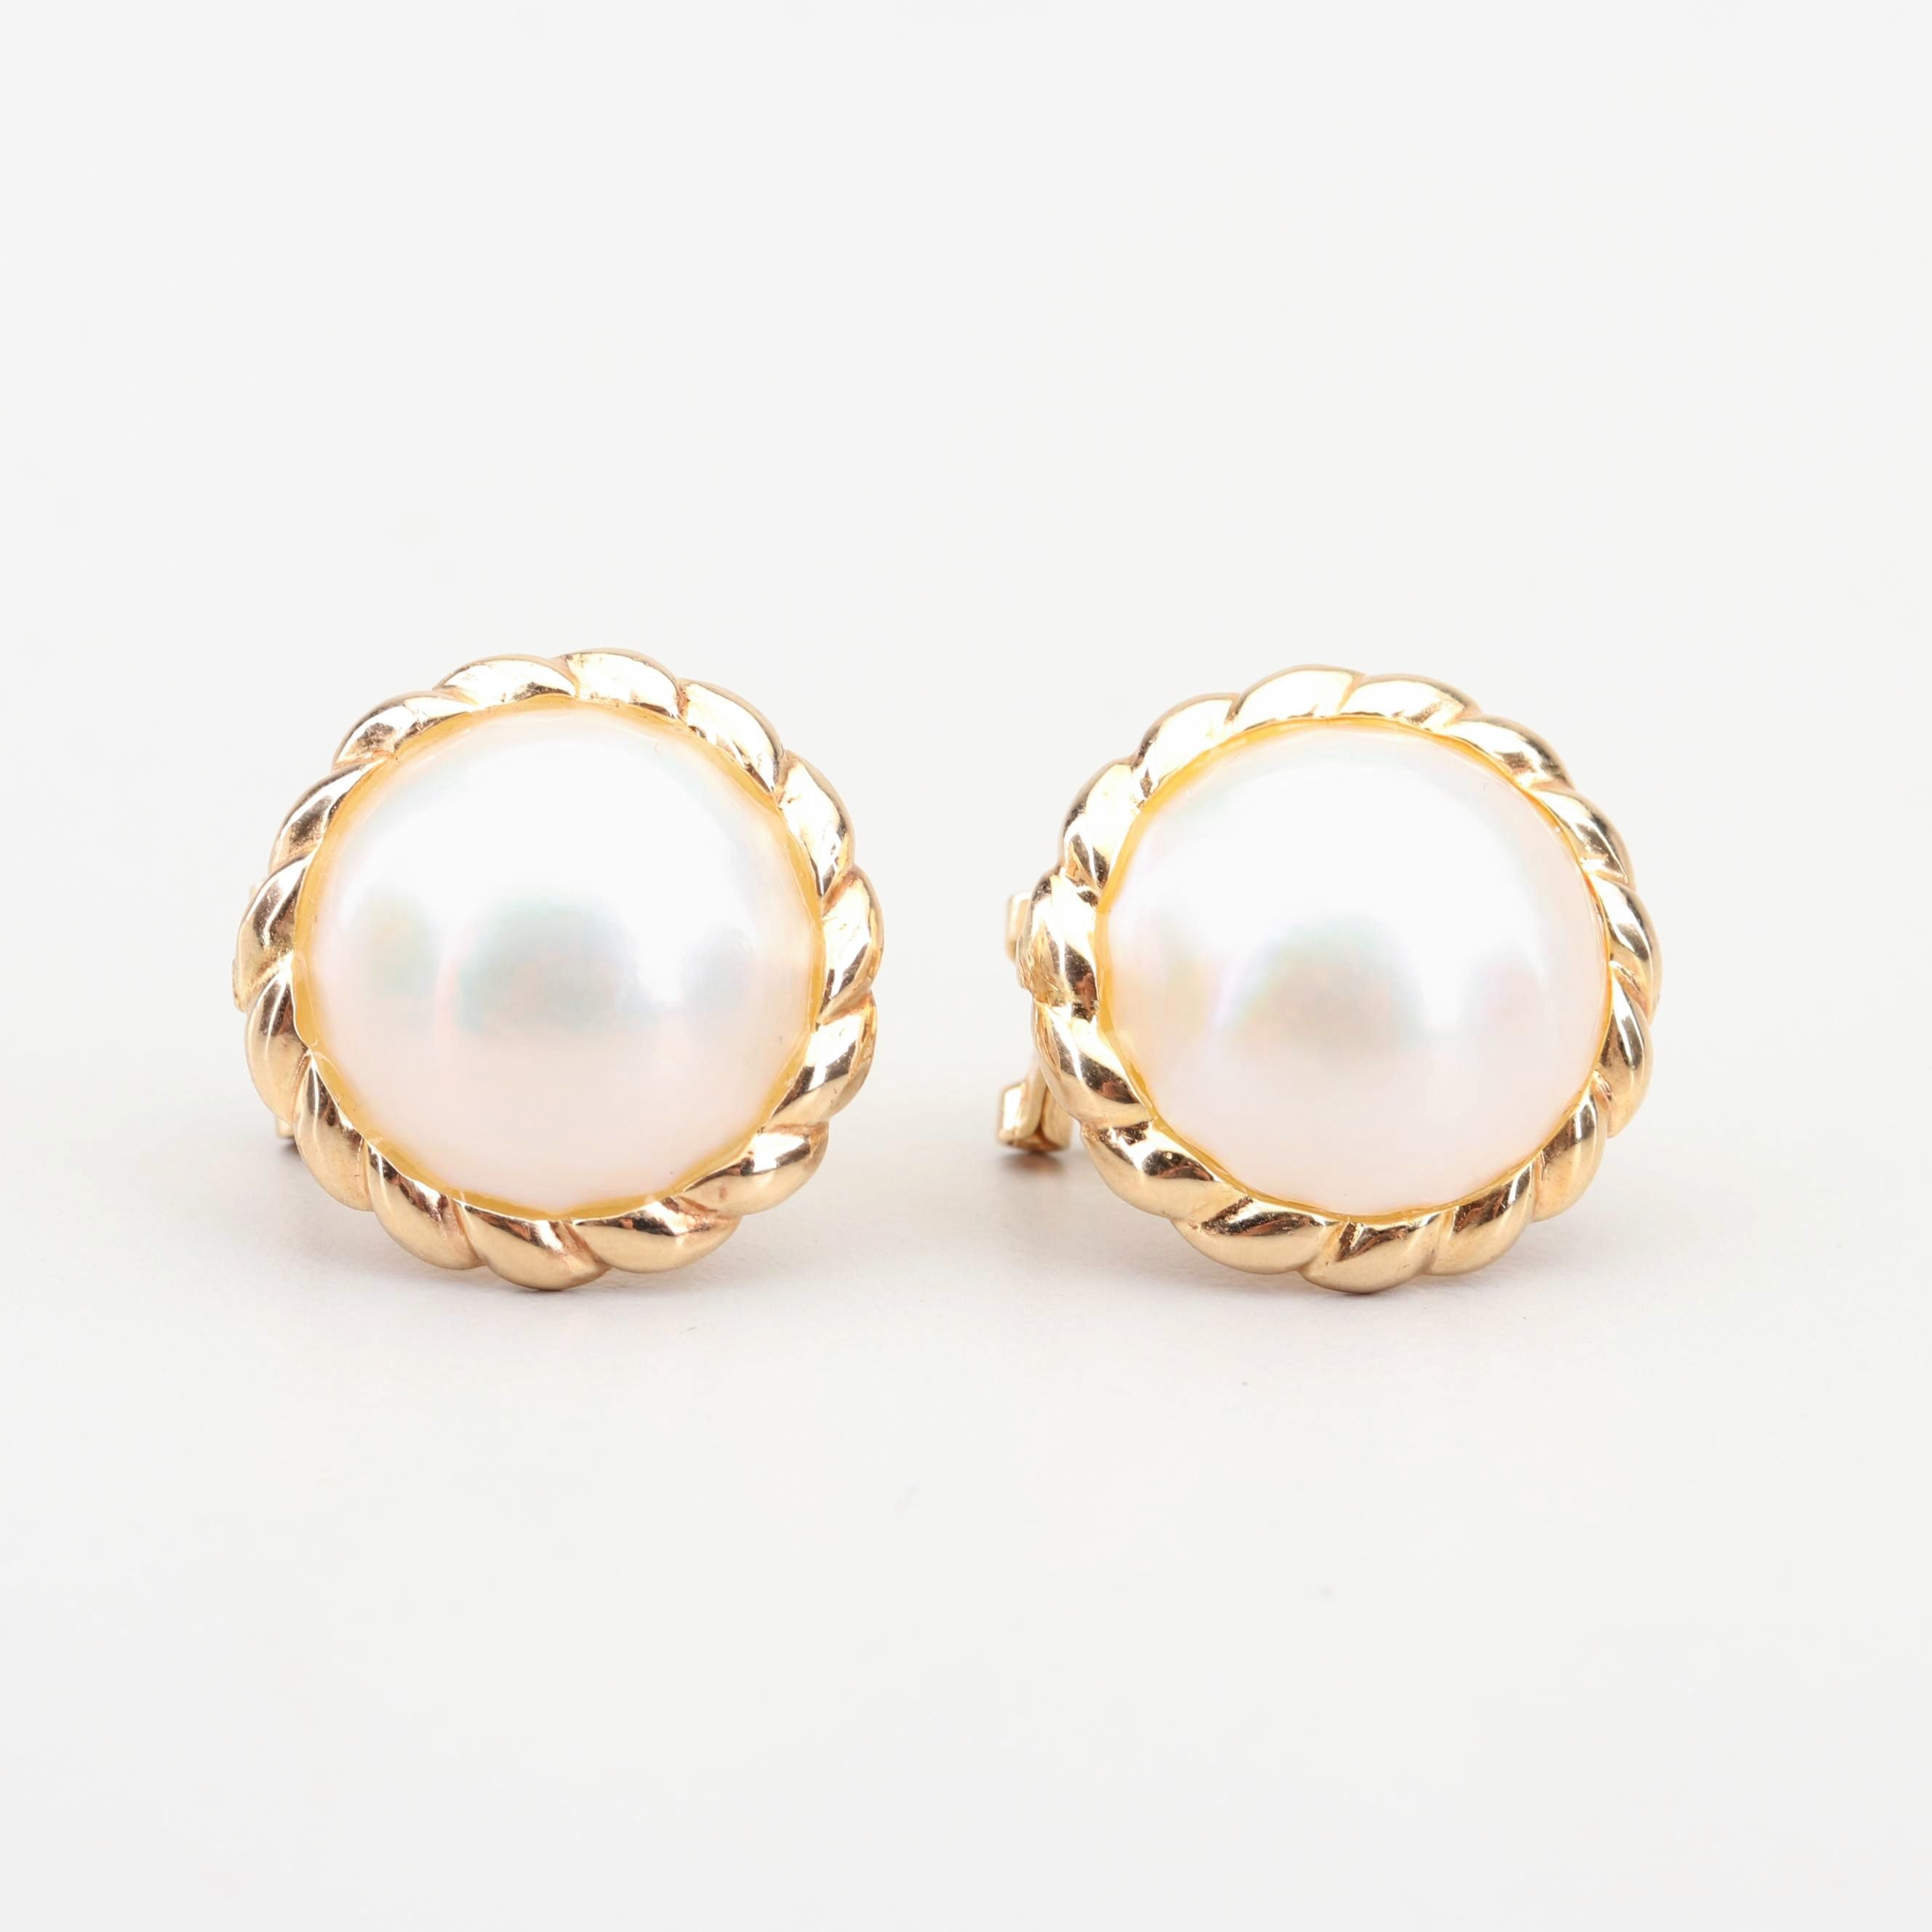 14K Yellow Gold Mabe' Pearl Earrings